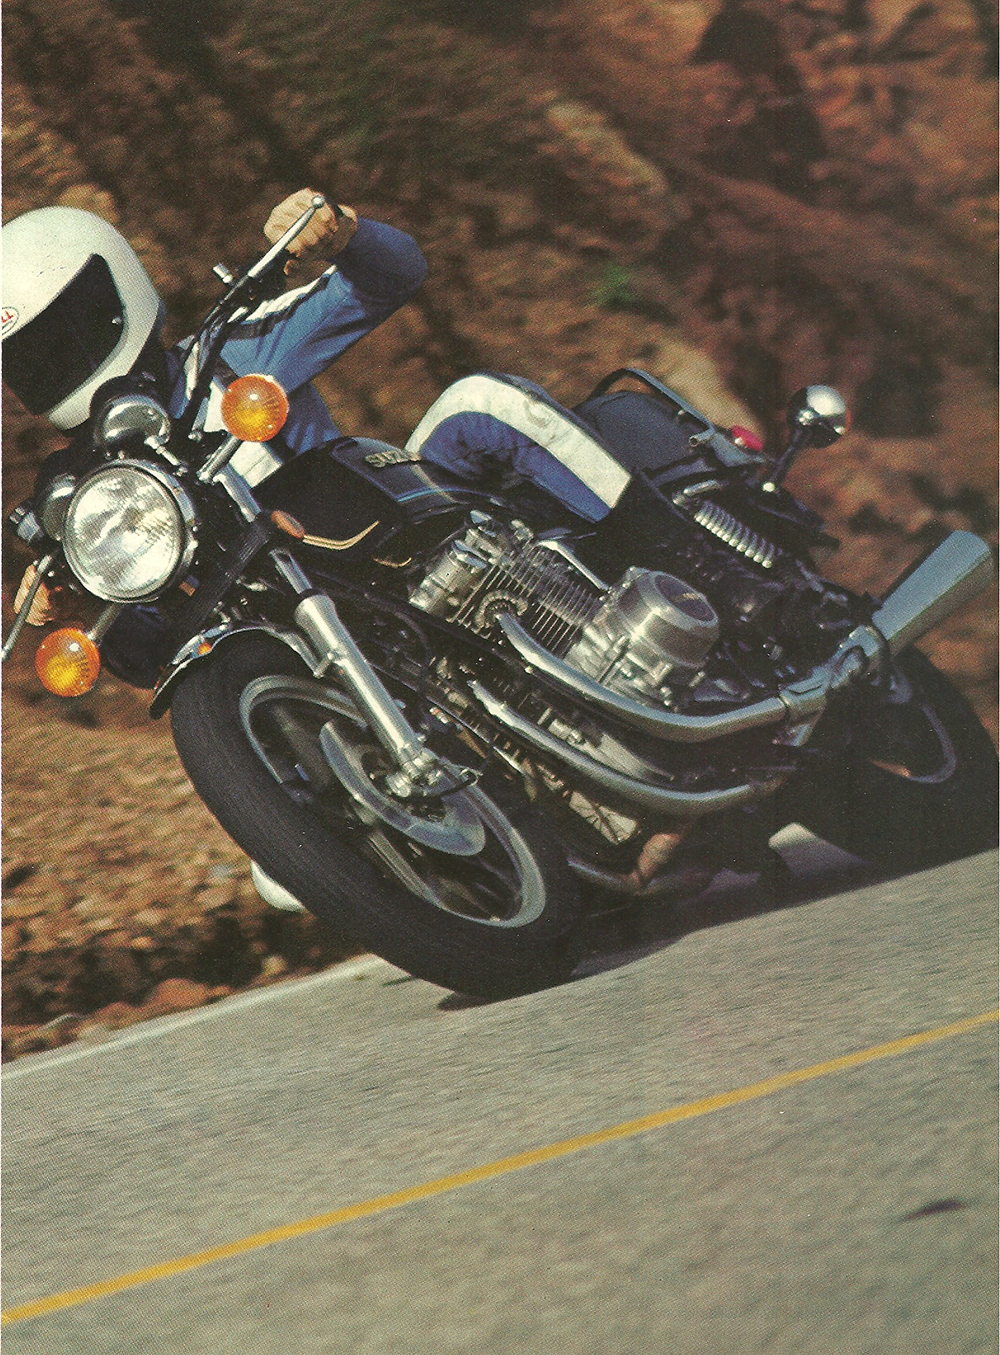 1979 Suzuki GS1000E road test 02.jpg